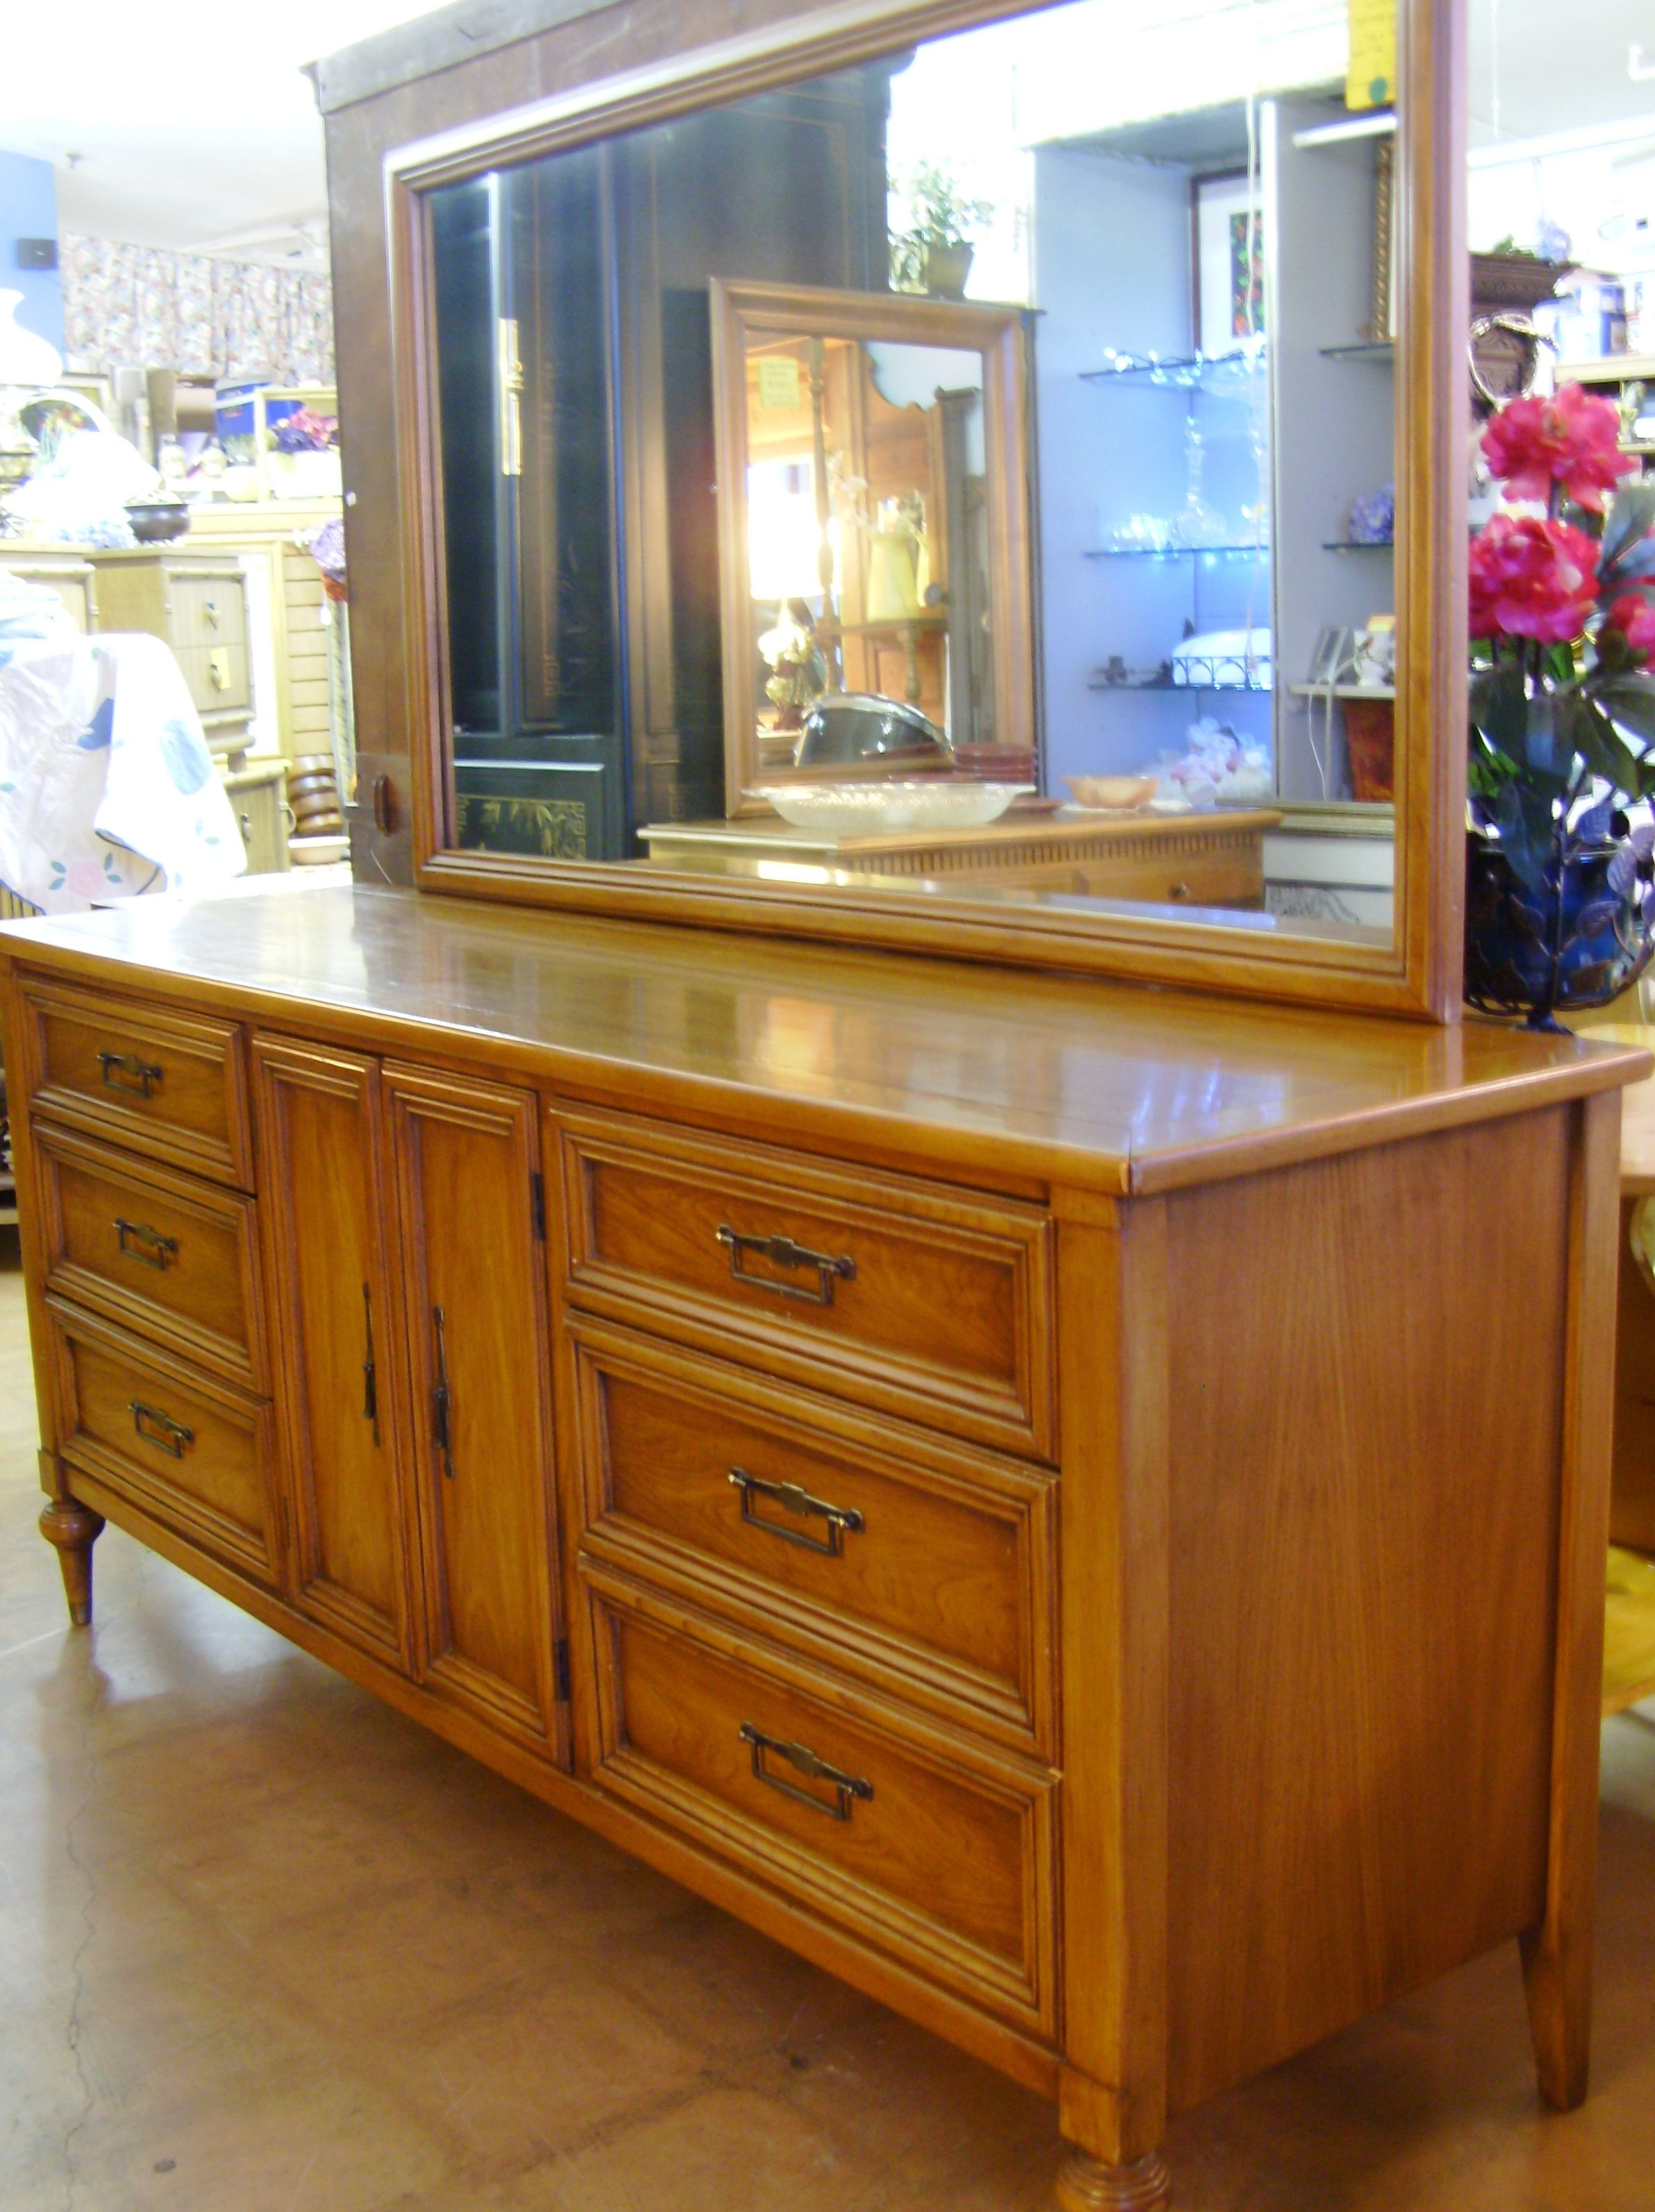 Delicieux Download White Furniture Company Mebane Nc Hardwood Furniture, White  Furniture, Vintage Furniture, Lowboy